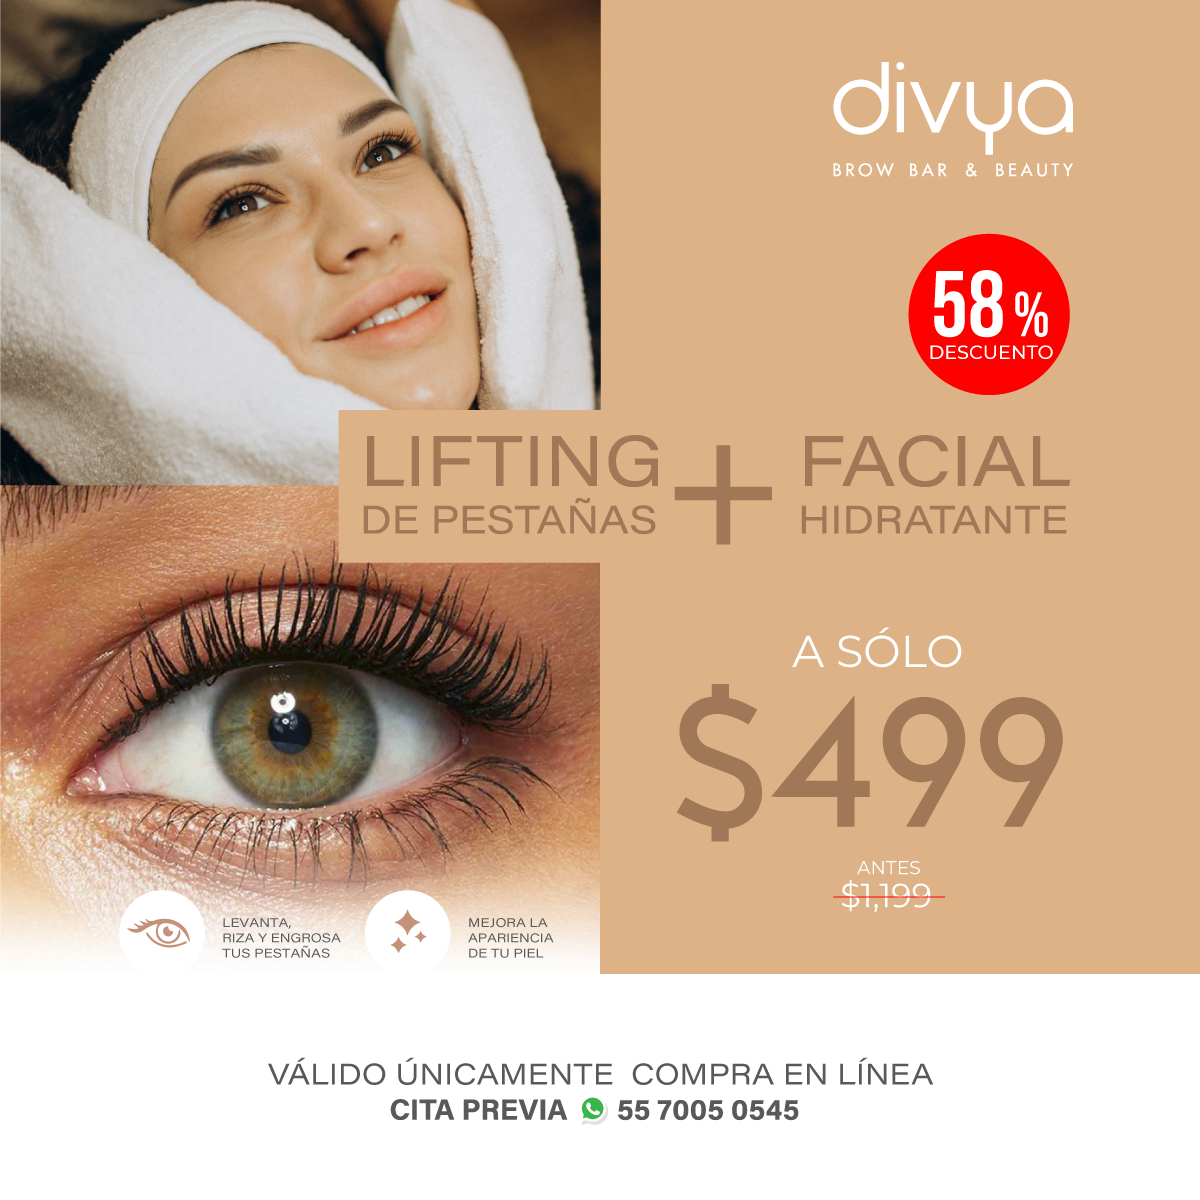 Lifting de Pestañas + Facial Hidratante- SÓLO TOWN CENTER EL ROSARIO&w=900&h=900&fit=crop